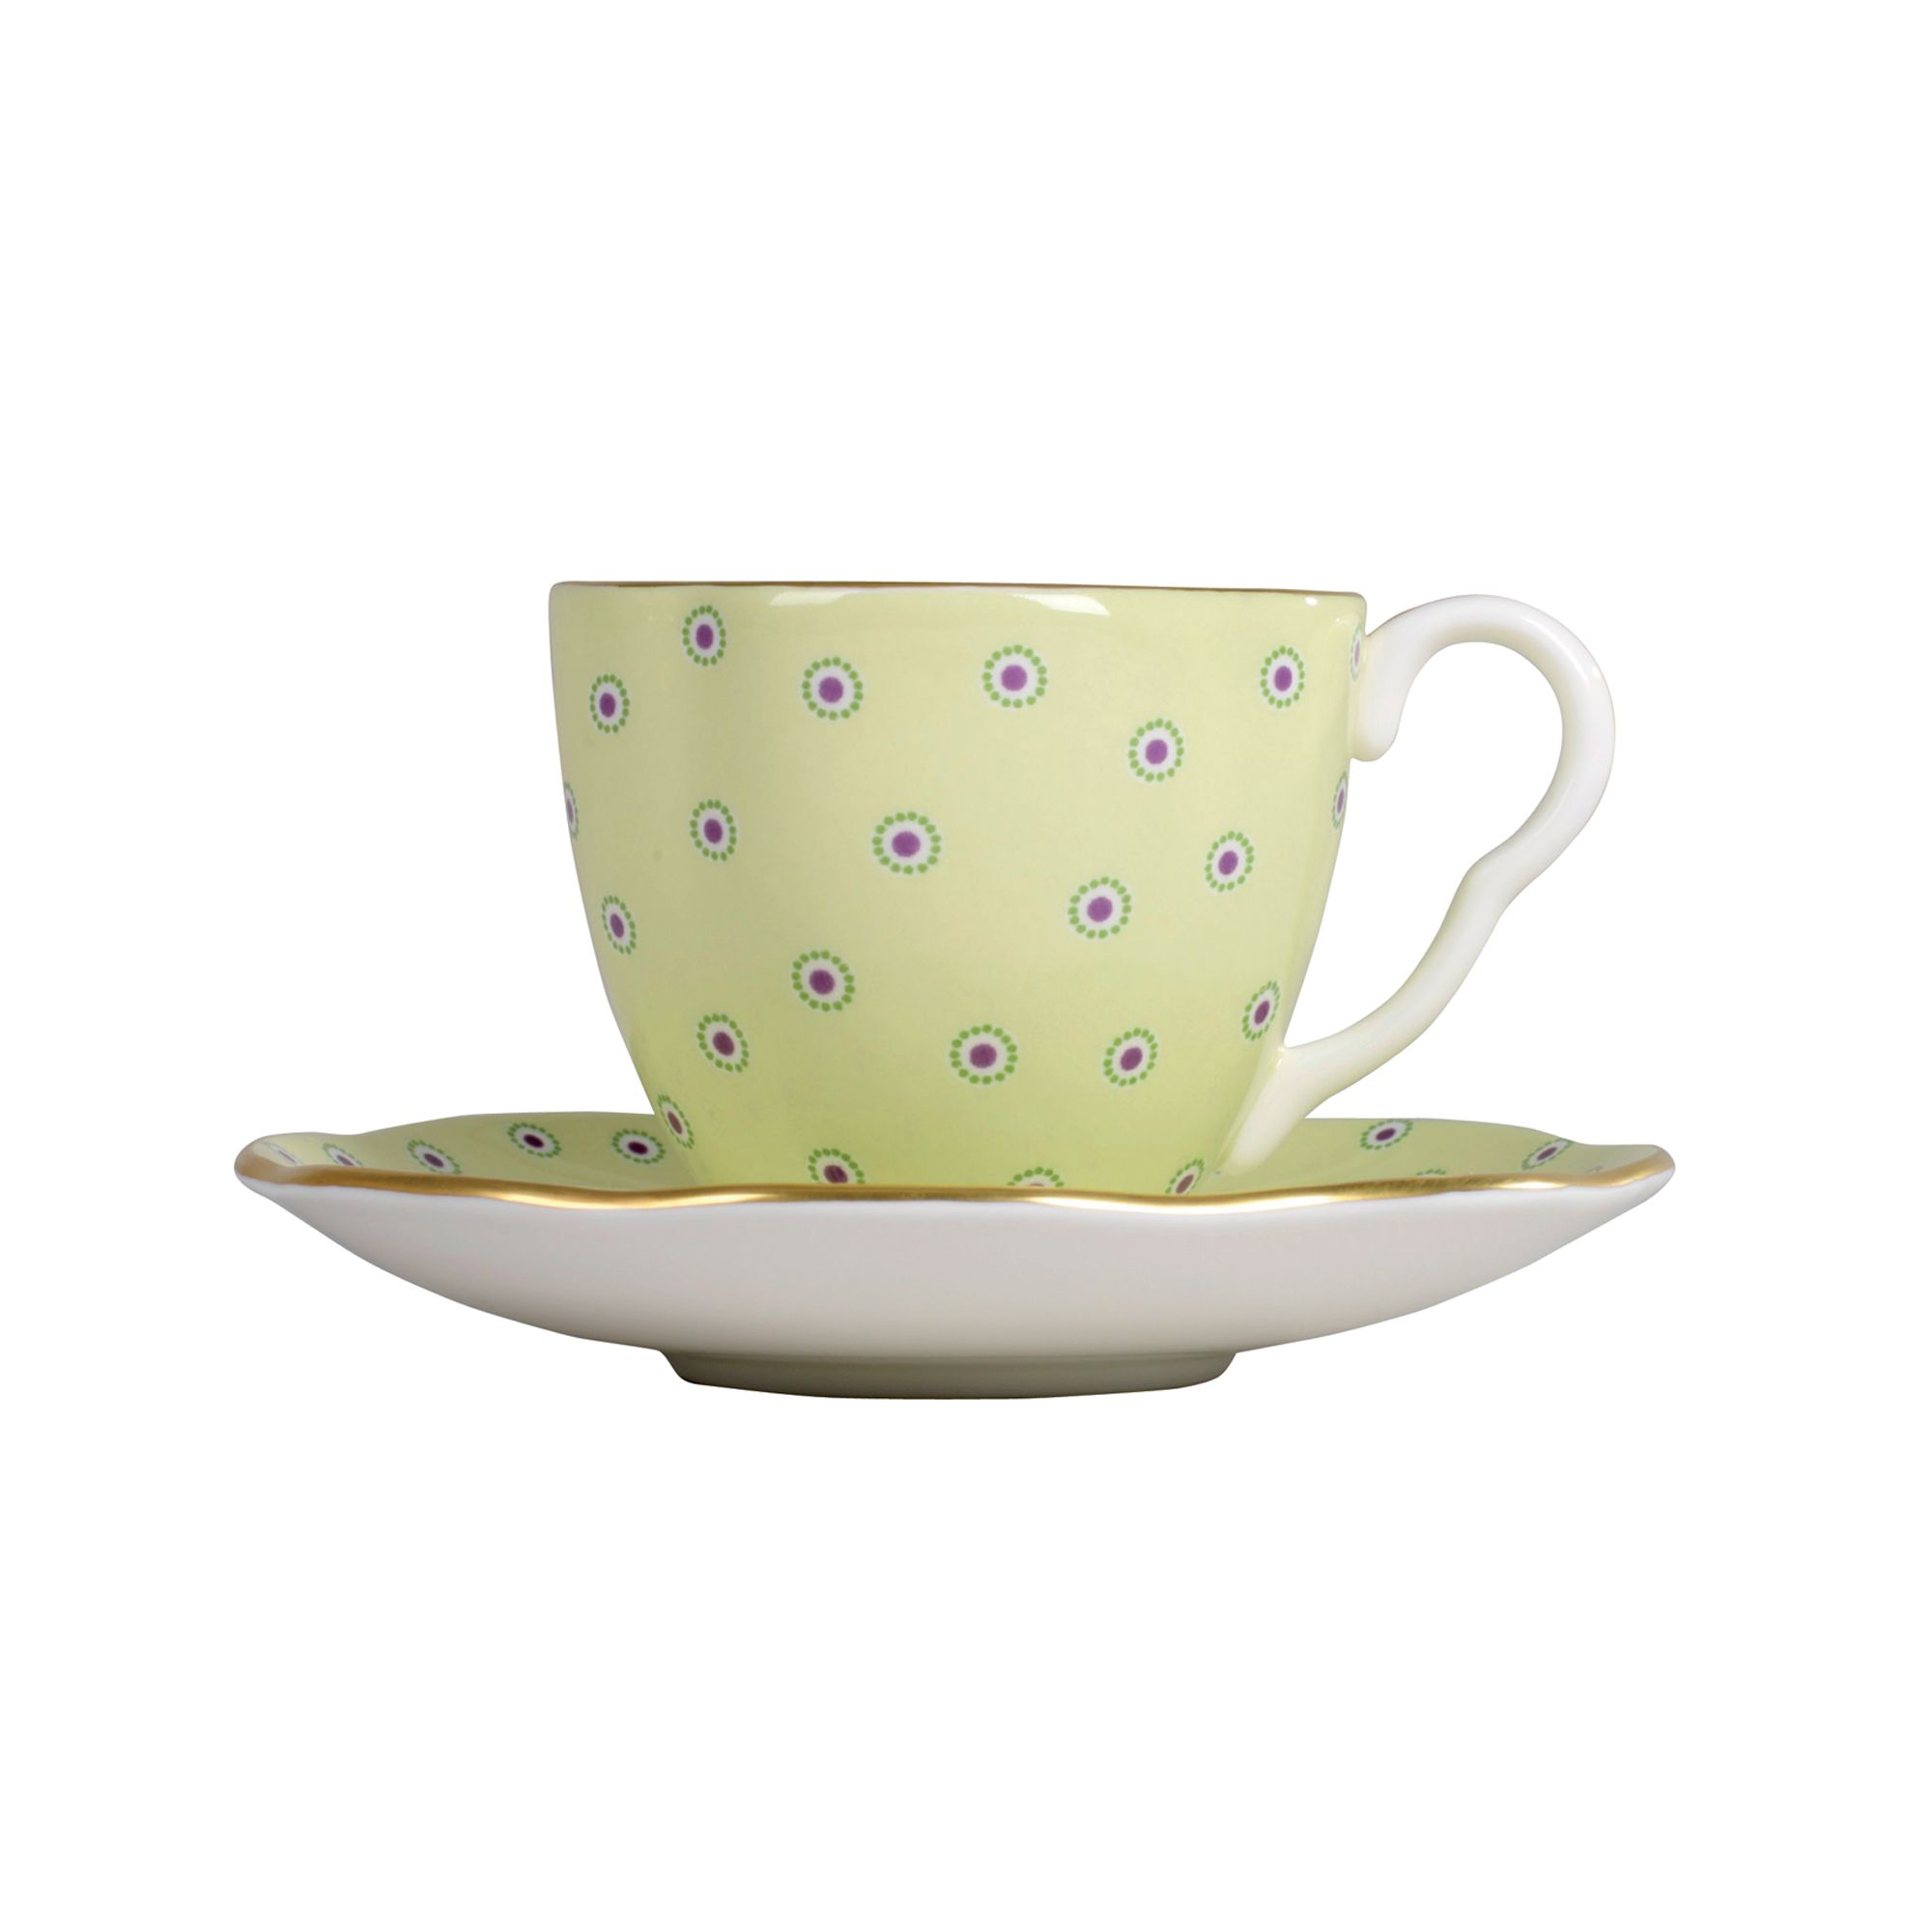 Polka Dot Cup and Saucer - Green